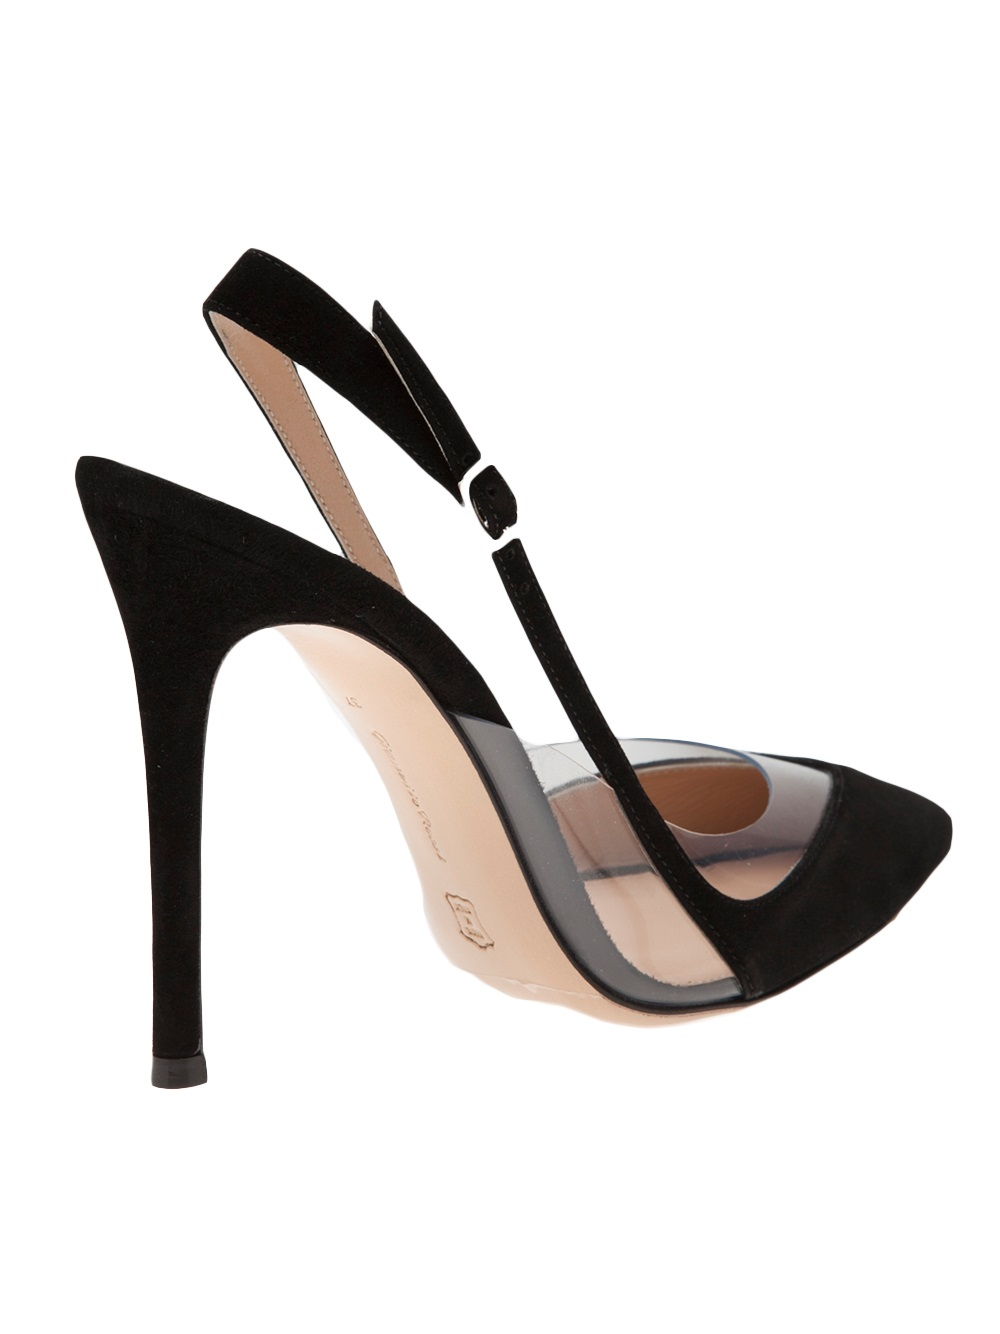 Gianvito Rossi Slingback Kitten Heel In Black Lyst